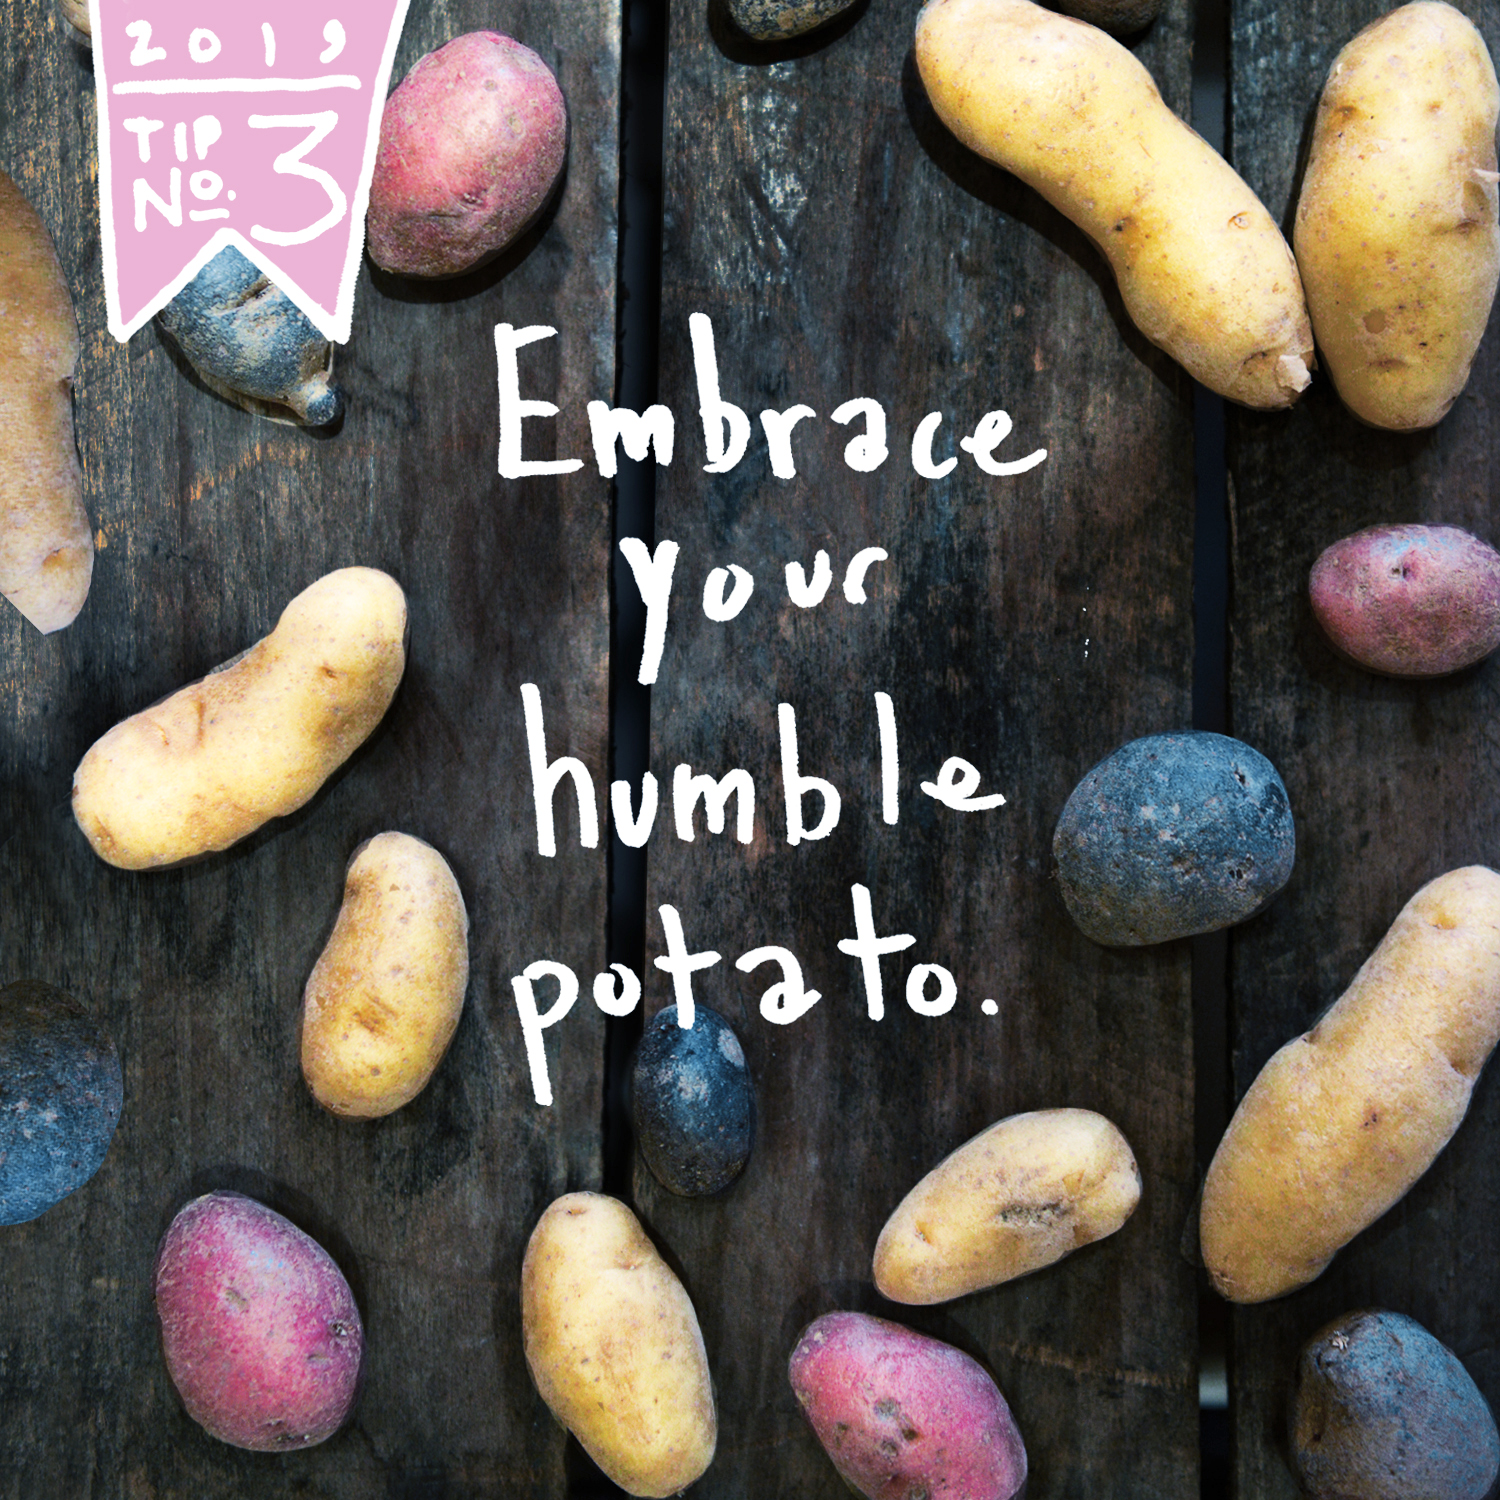 Celebrate the power of the simple. - Sometimes the simplest ingredients yield the tastiest results. Embrace your humble potato. When we go back to the basics, we find that even the most ordinary of objectives can still be useful & important. Small steps (like where you buy your produce) help to make long lasting sustainable change instead of flashy big unrealistic or unattainable goals.